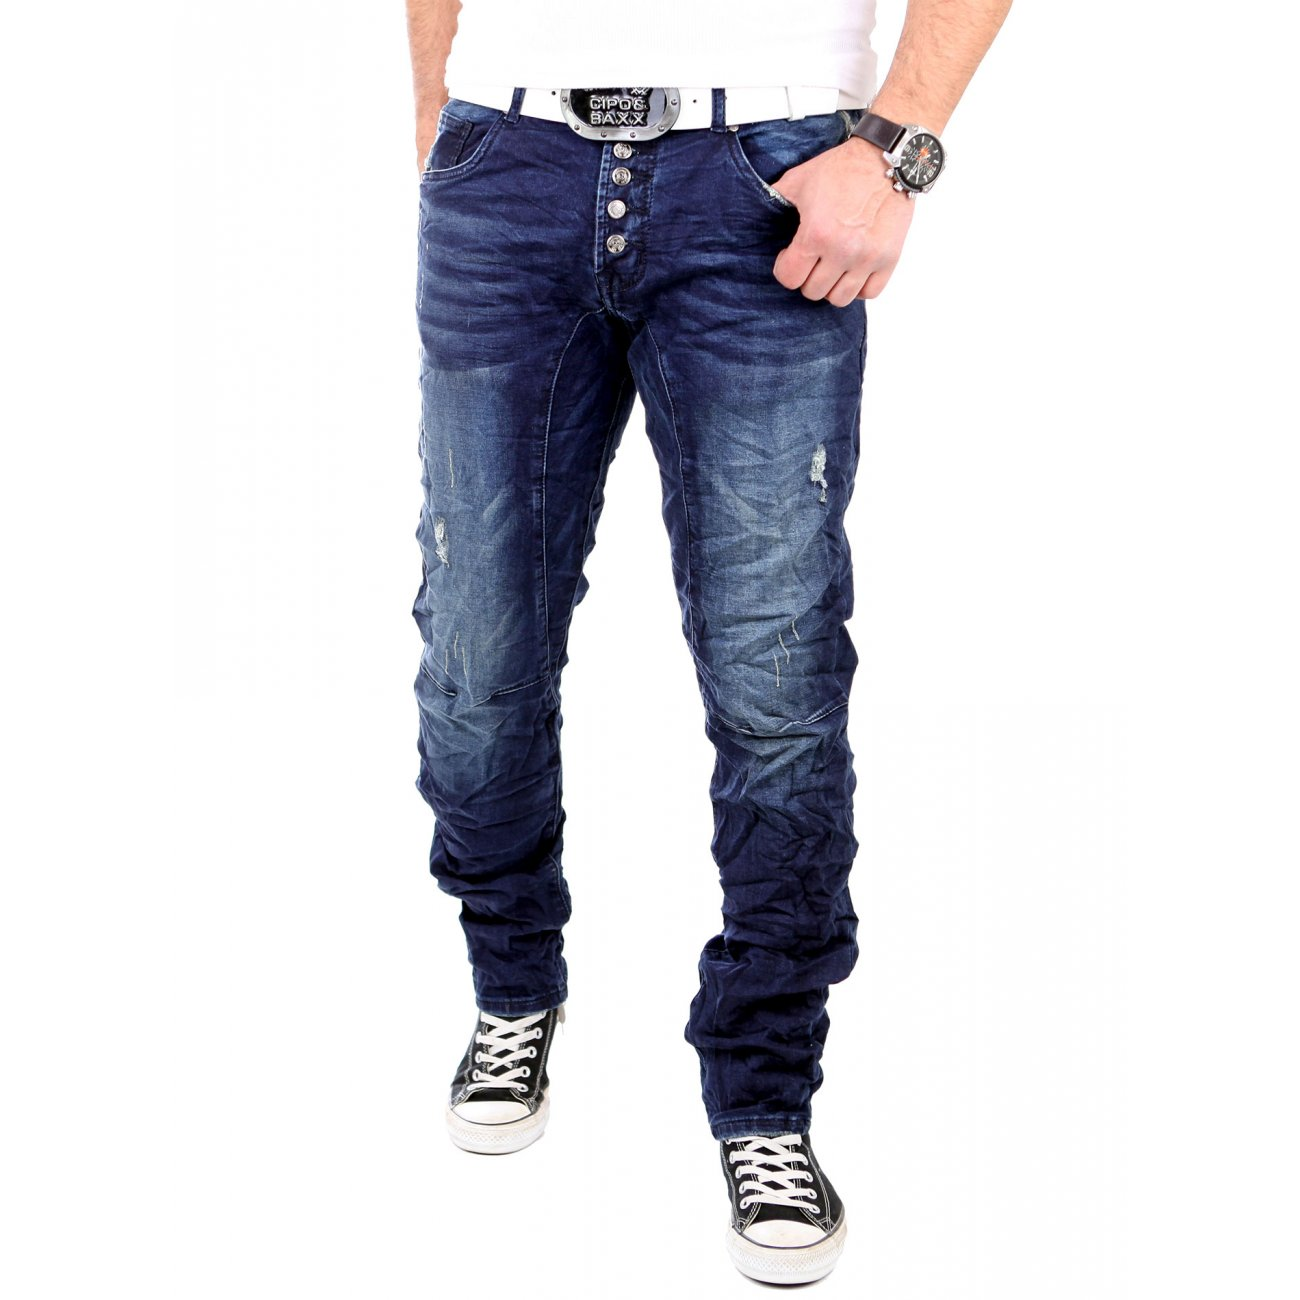 reslad jogg jeans herren used look jogging jeans blau. Black Bedroom Furniture Sets. Home Design Ideas